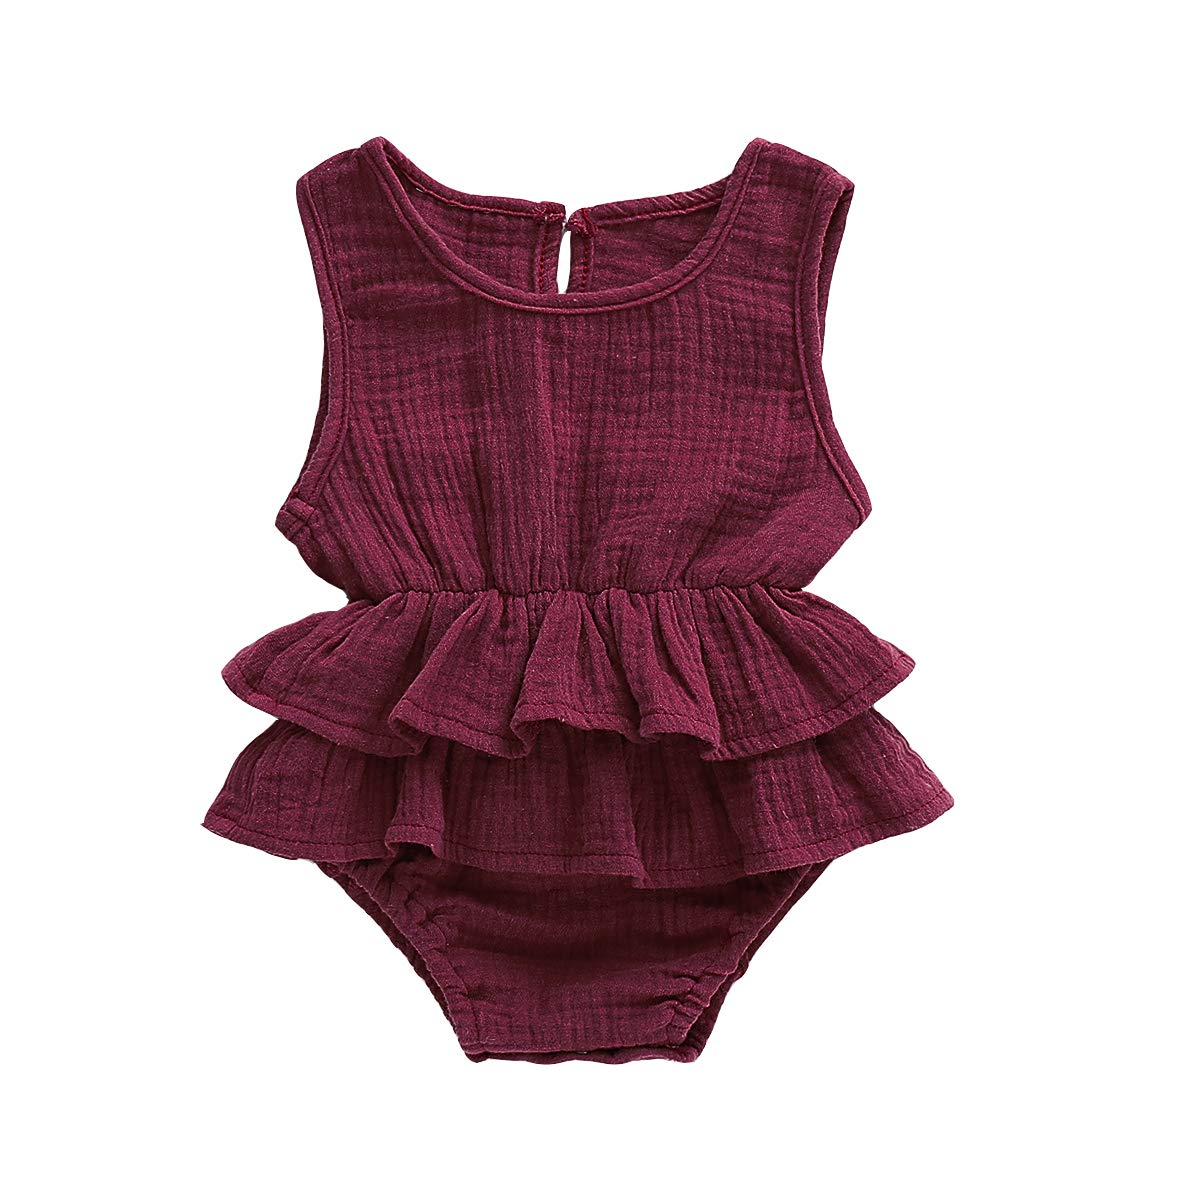 Infant Newborn Baby Girl Romper Bodysuit Ruffle Bowknot One-Piece Jumpsuit Outfit Clothes Summer 0-24M (Wine Red, 18-24 Months)